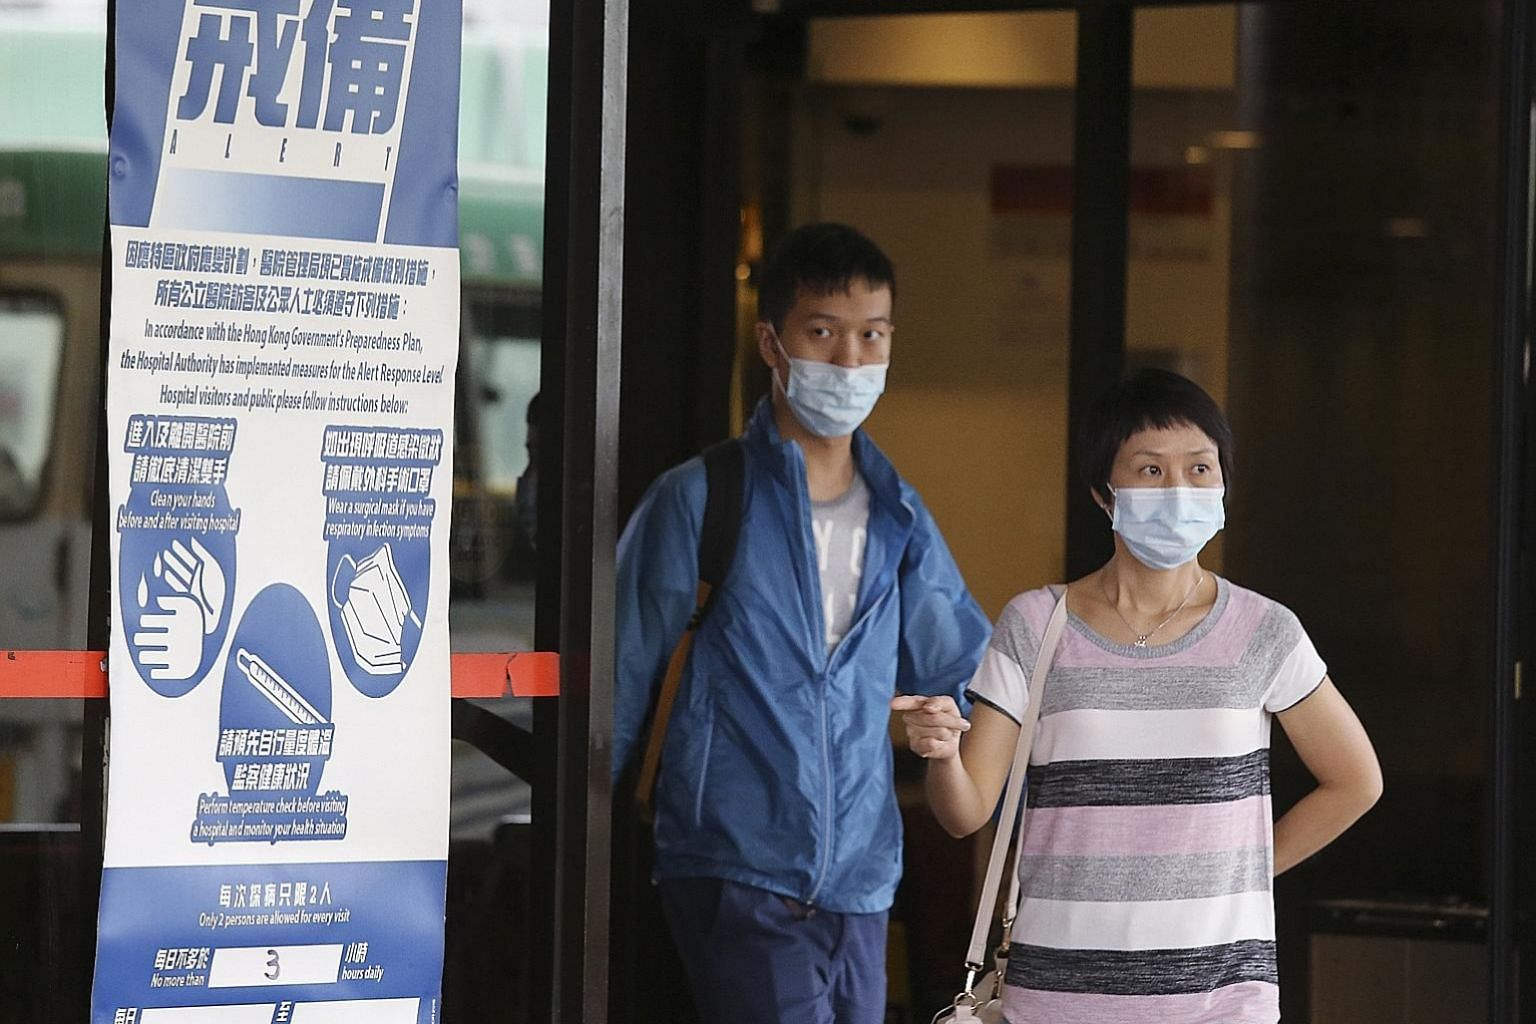 Notices at Queen Mary Hospital in Hong Kong alerting the public that the serious influenza pandemic response level has been activated. Since May, 205 adults and three children have died.